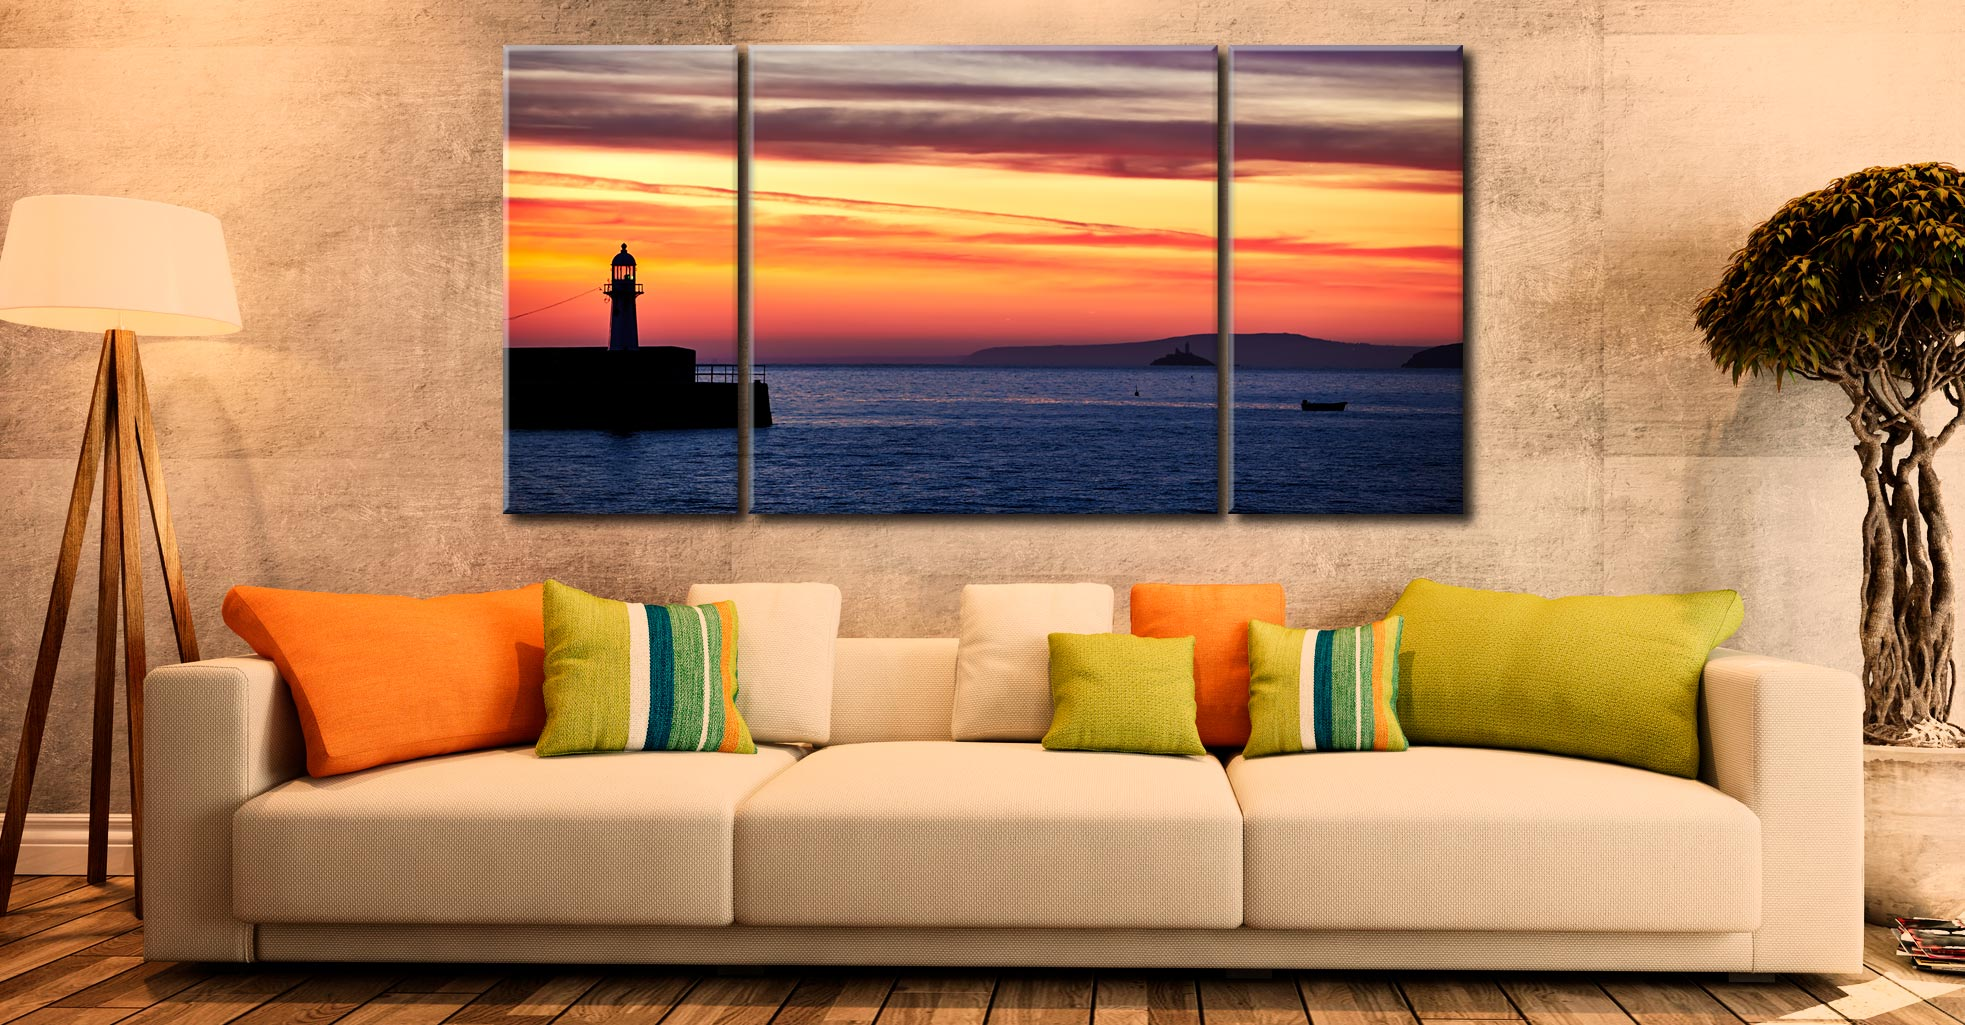 Dawn Harbour St Ives Lighthouse - 3 Panel Wide Centre Canvas on Wall